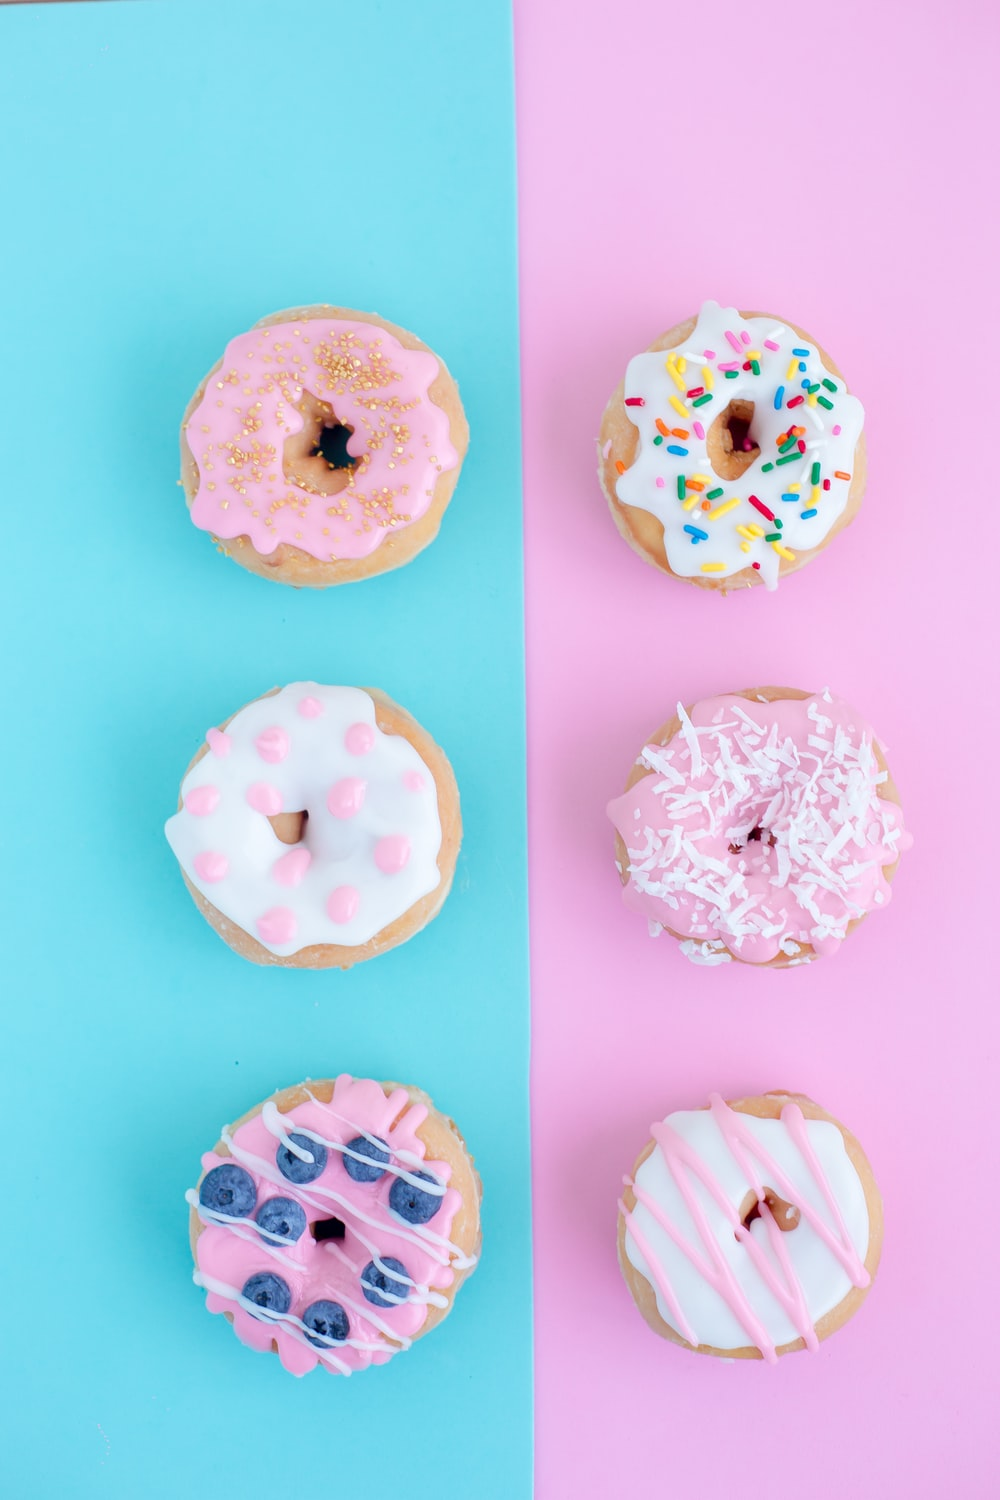 500 Donut Pictures Download Free Images On Unsplash